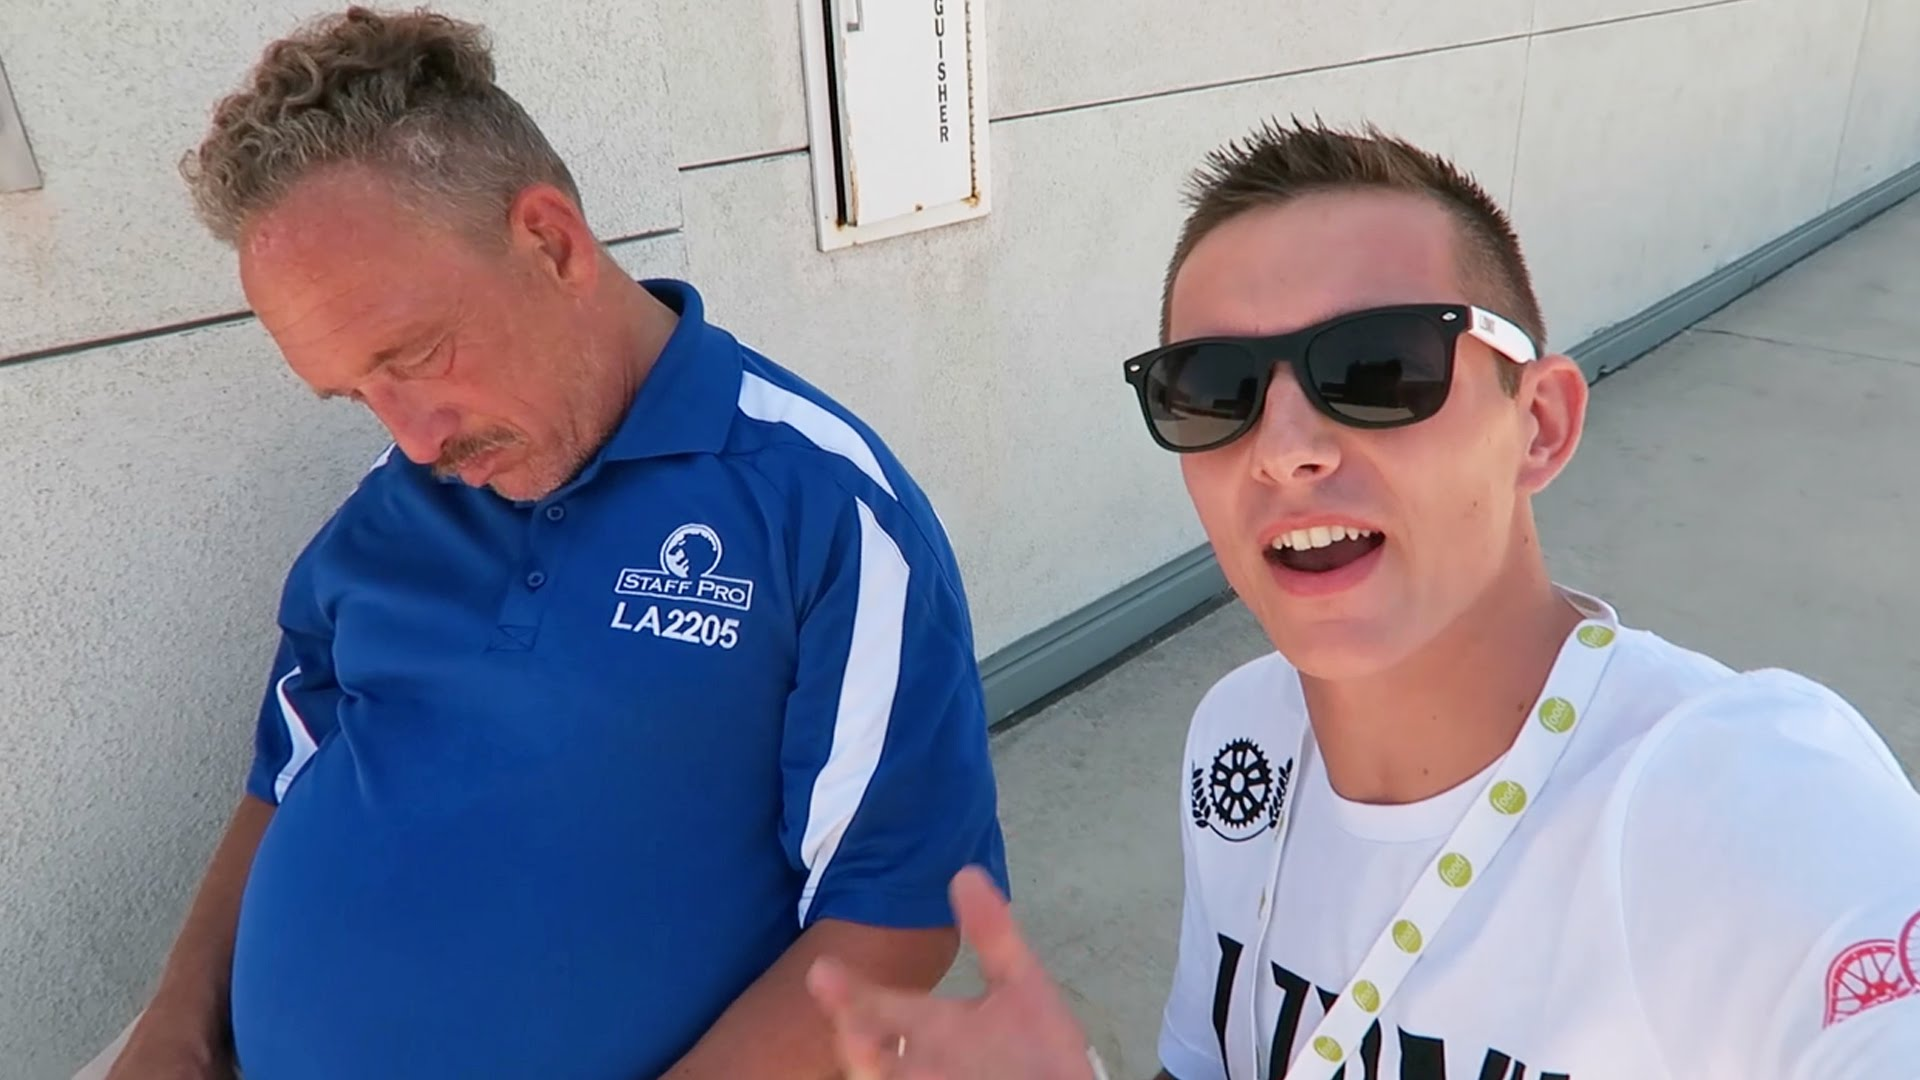 MESSING WITH SLEEPING SECURITY – VIDCON